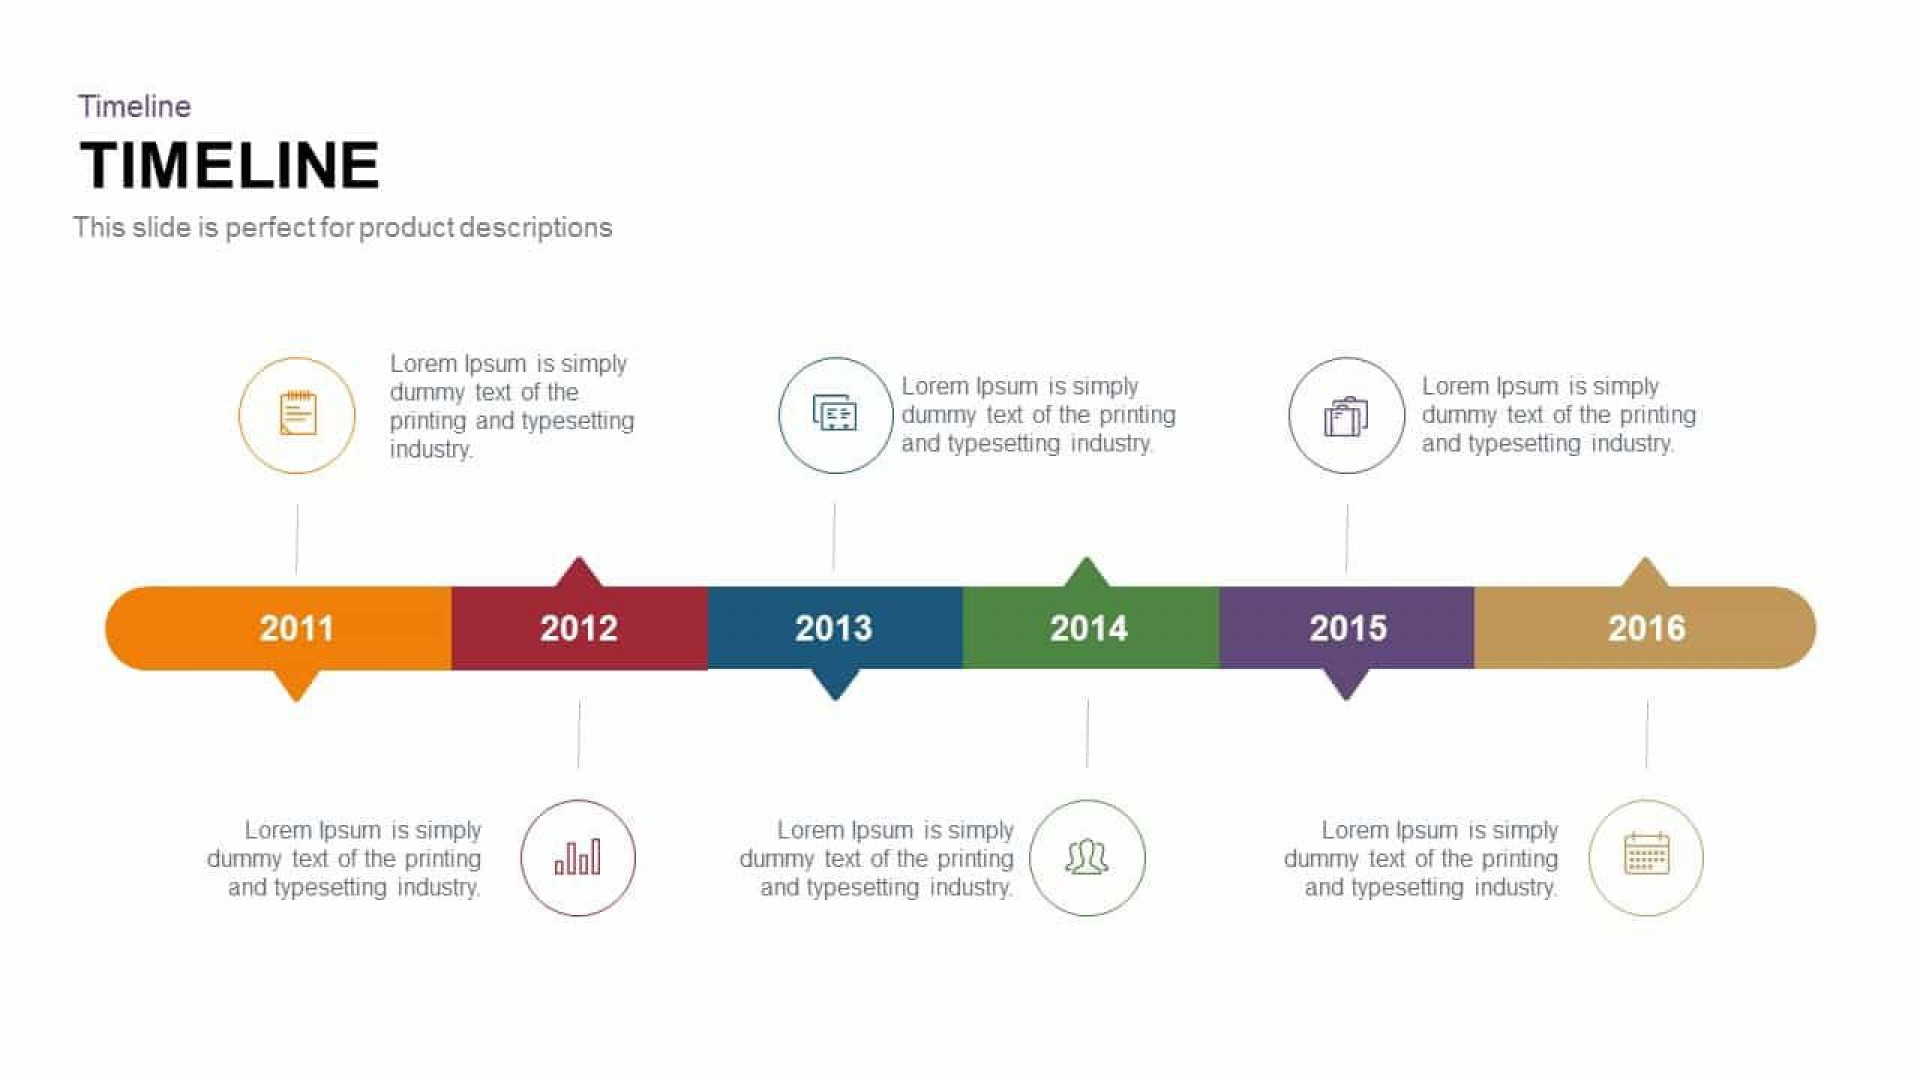 009 Stupendou Timeline Format For Presentation Image  Example Graph Template Powerpoint Download1920